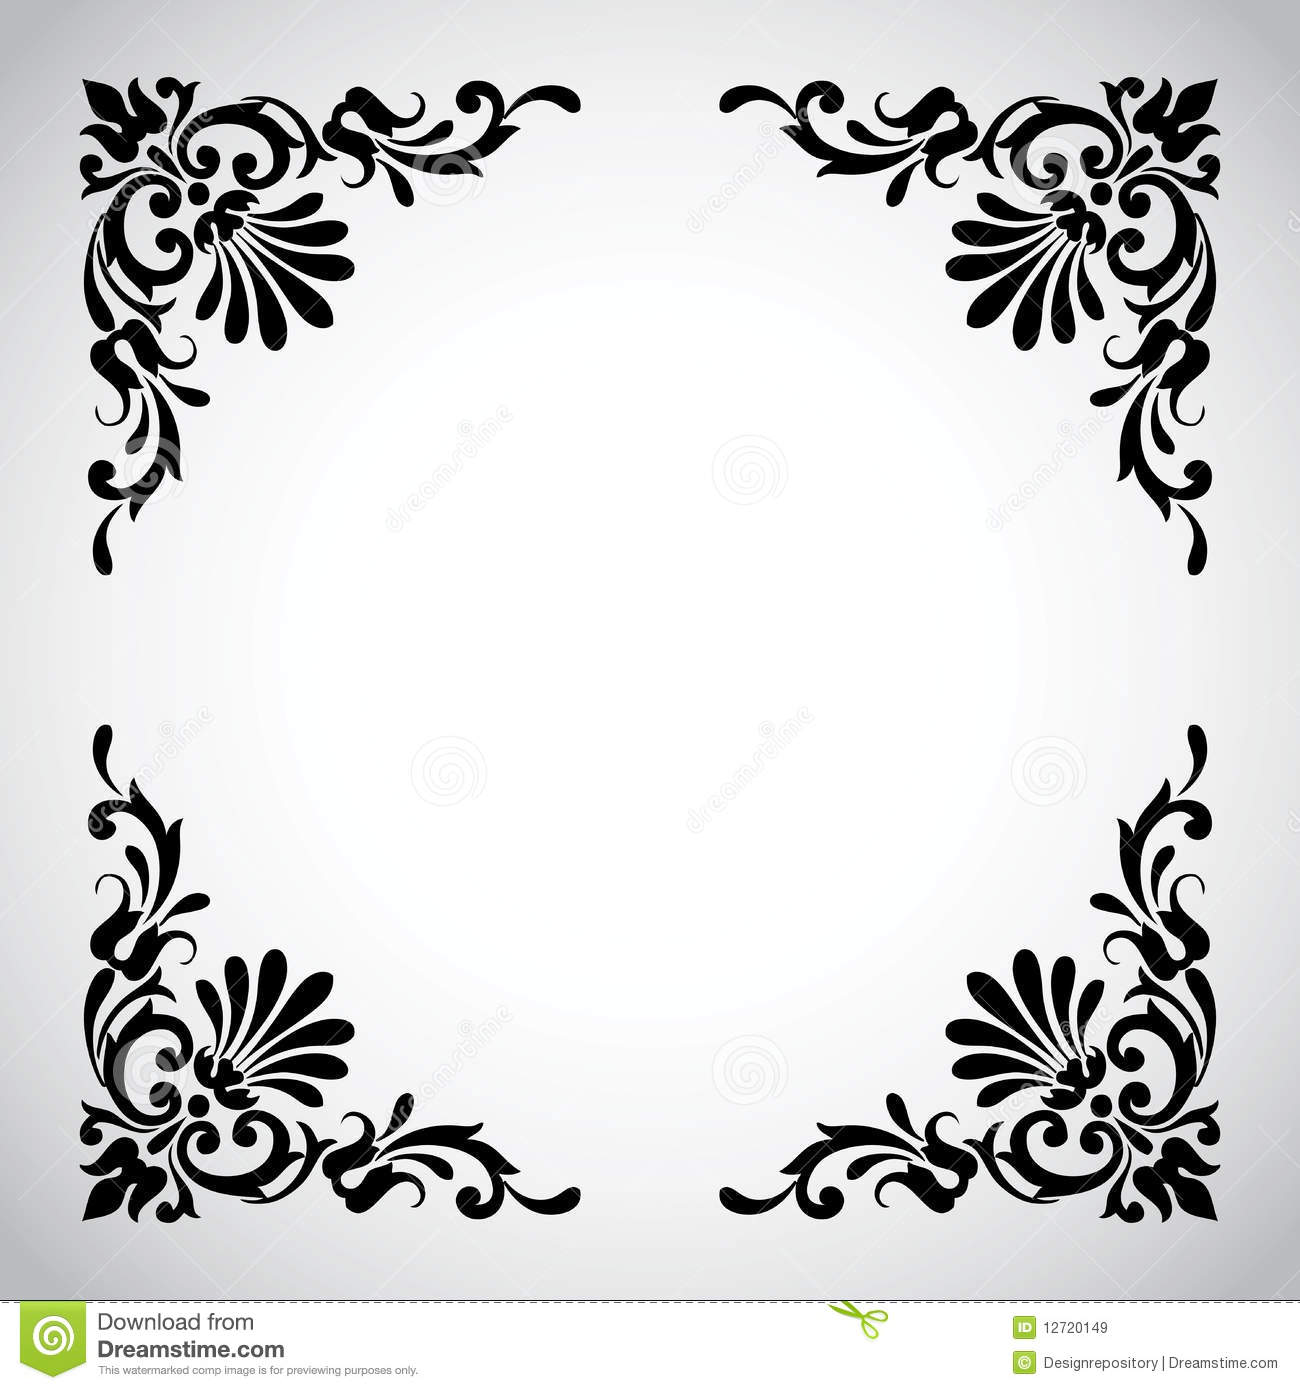 Dragon vector sign stock vector 313643336 shutterstock -  14 Decorative Vintage Design Element Royalty Free Stock